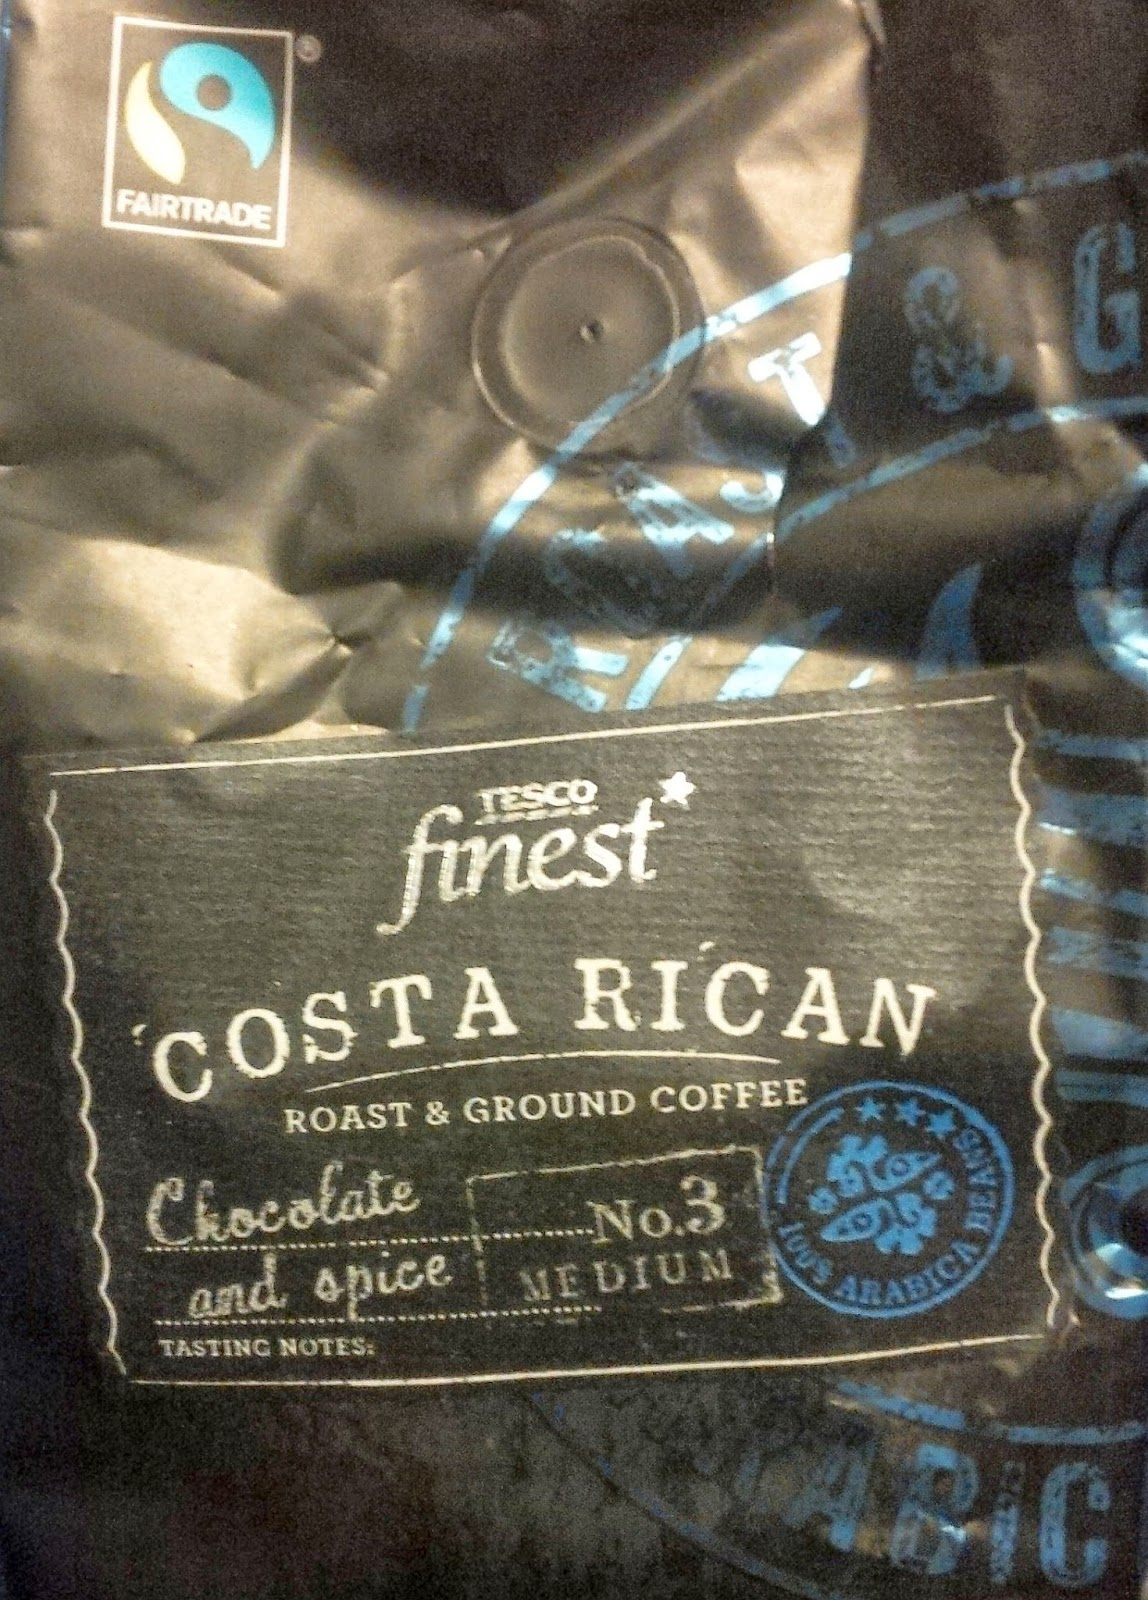 Smell The Tea And Coffee Tesco Finest Costa Rican Coffee